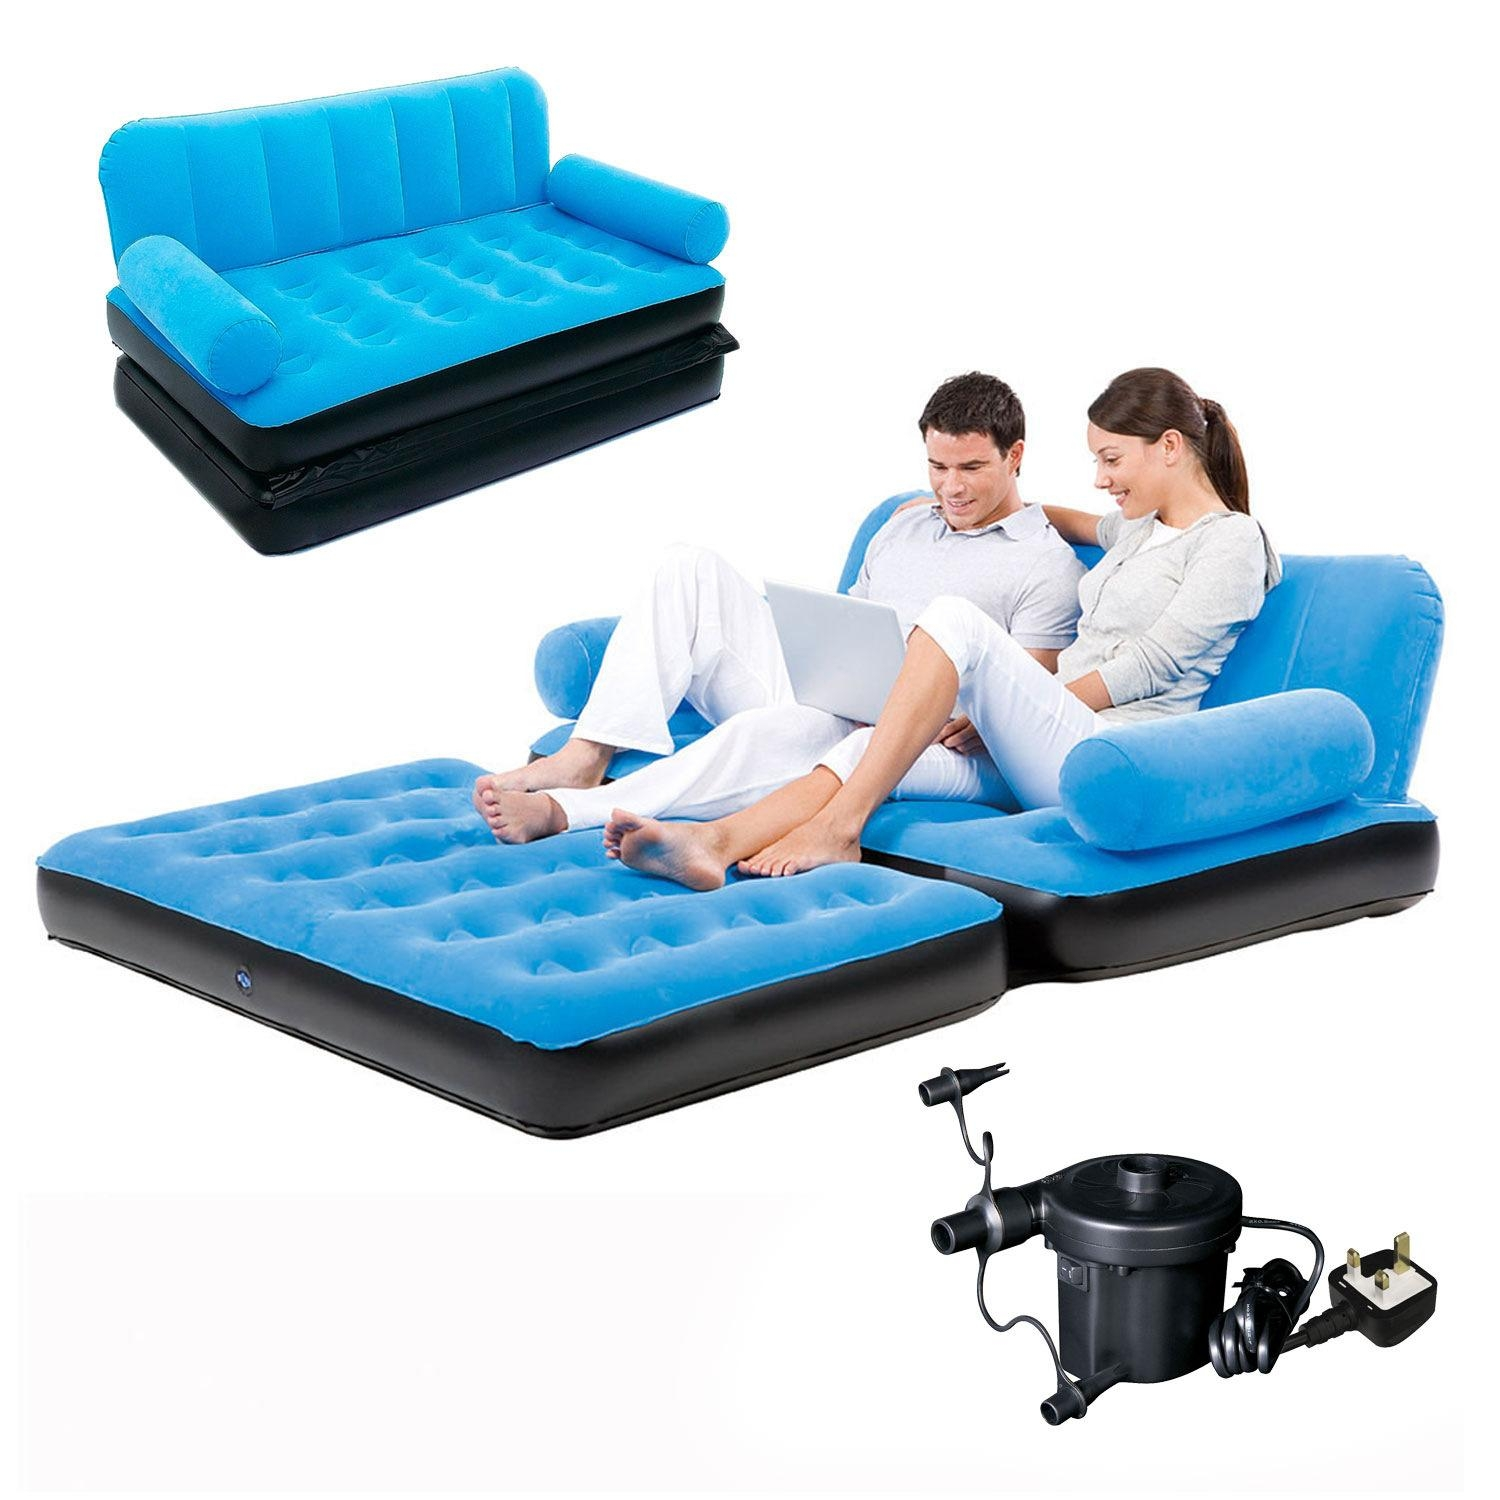 Inflatable Sofa Bed | Roselawnlutheran Throughout Intex Air Sofa Beds (View 13 of 20)